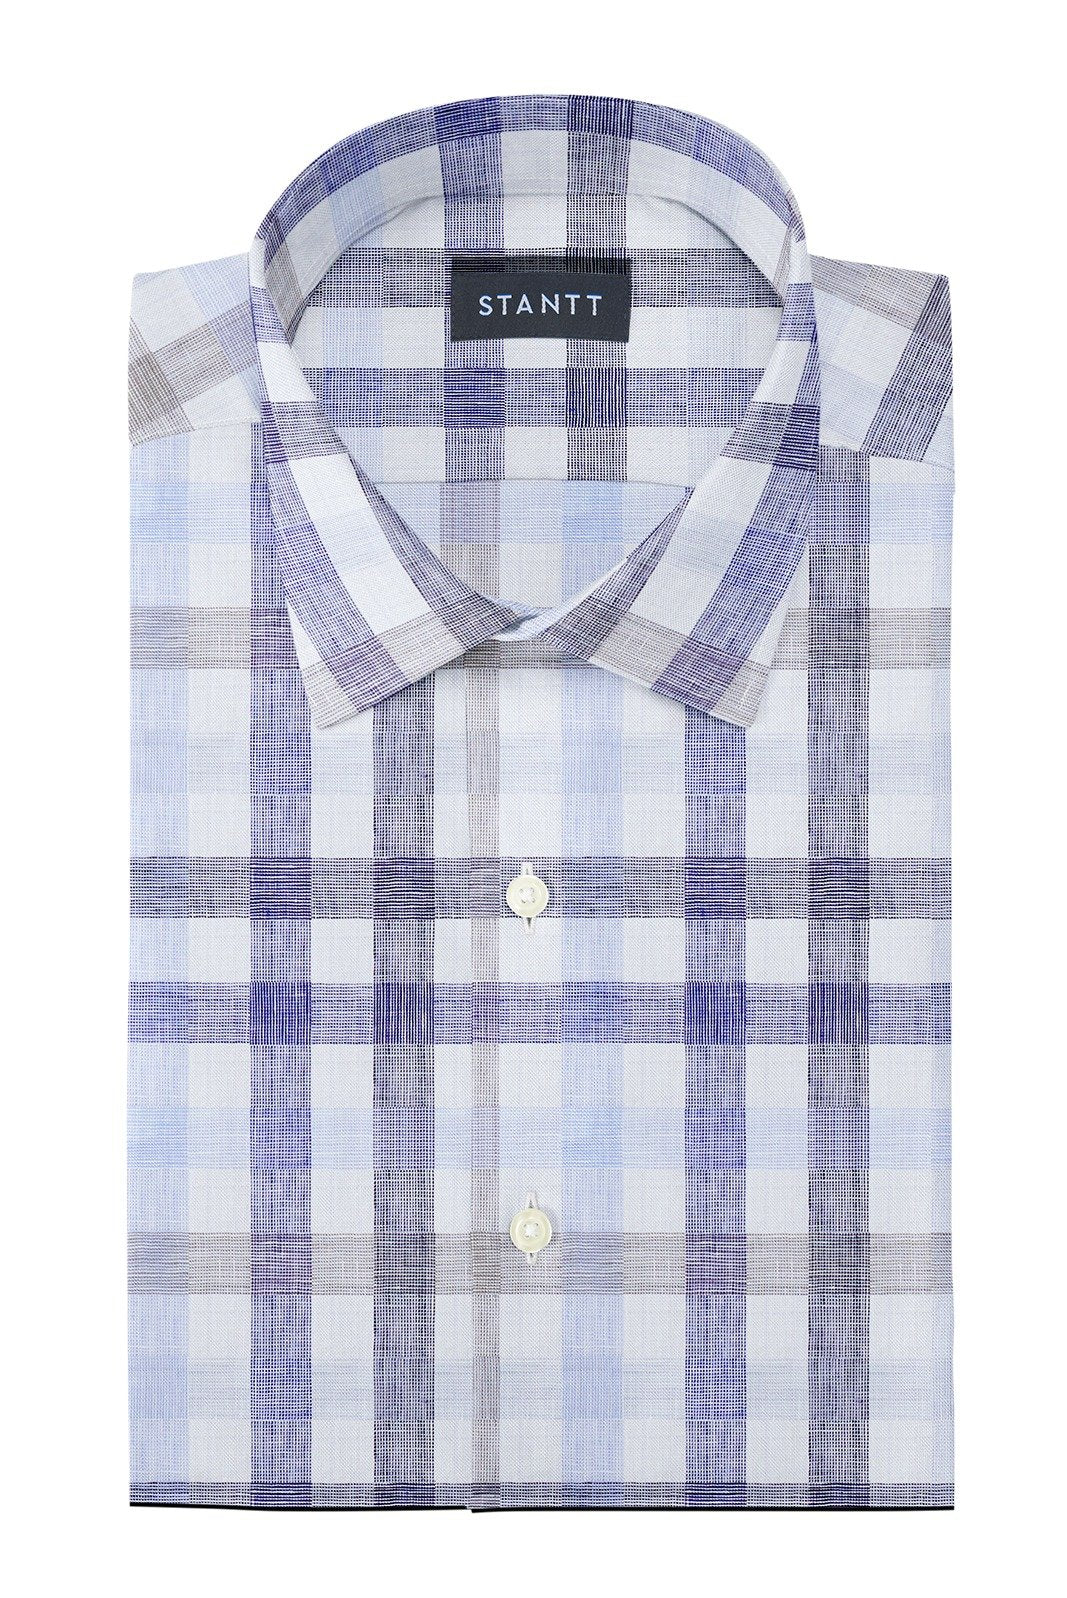 Blue and Beige Large Linen Check: Modified-Spread Collar, Barrel Cuff